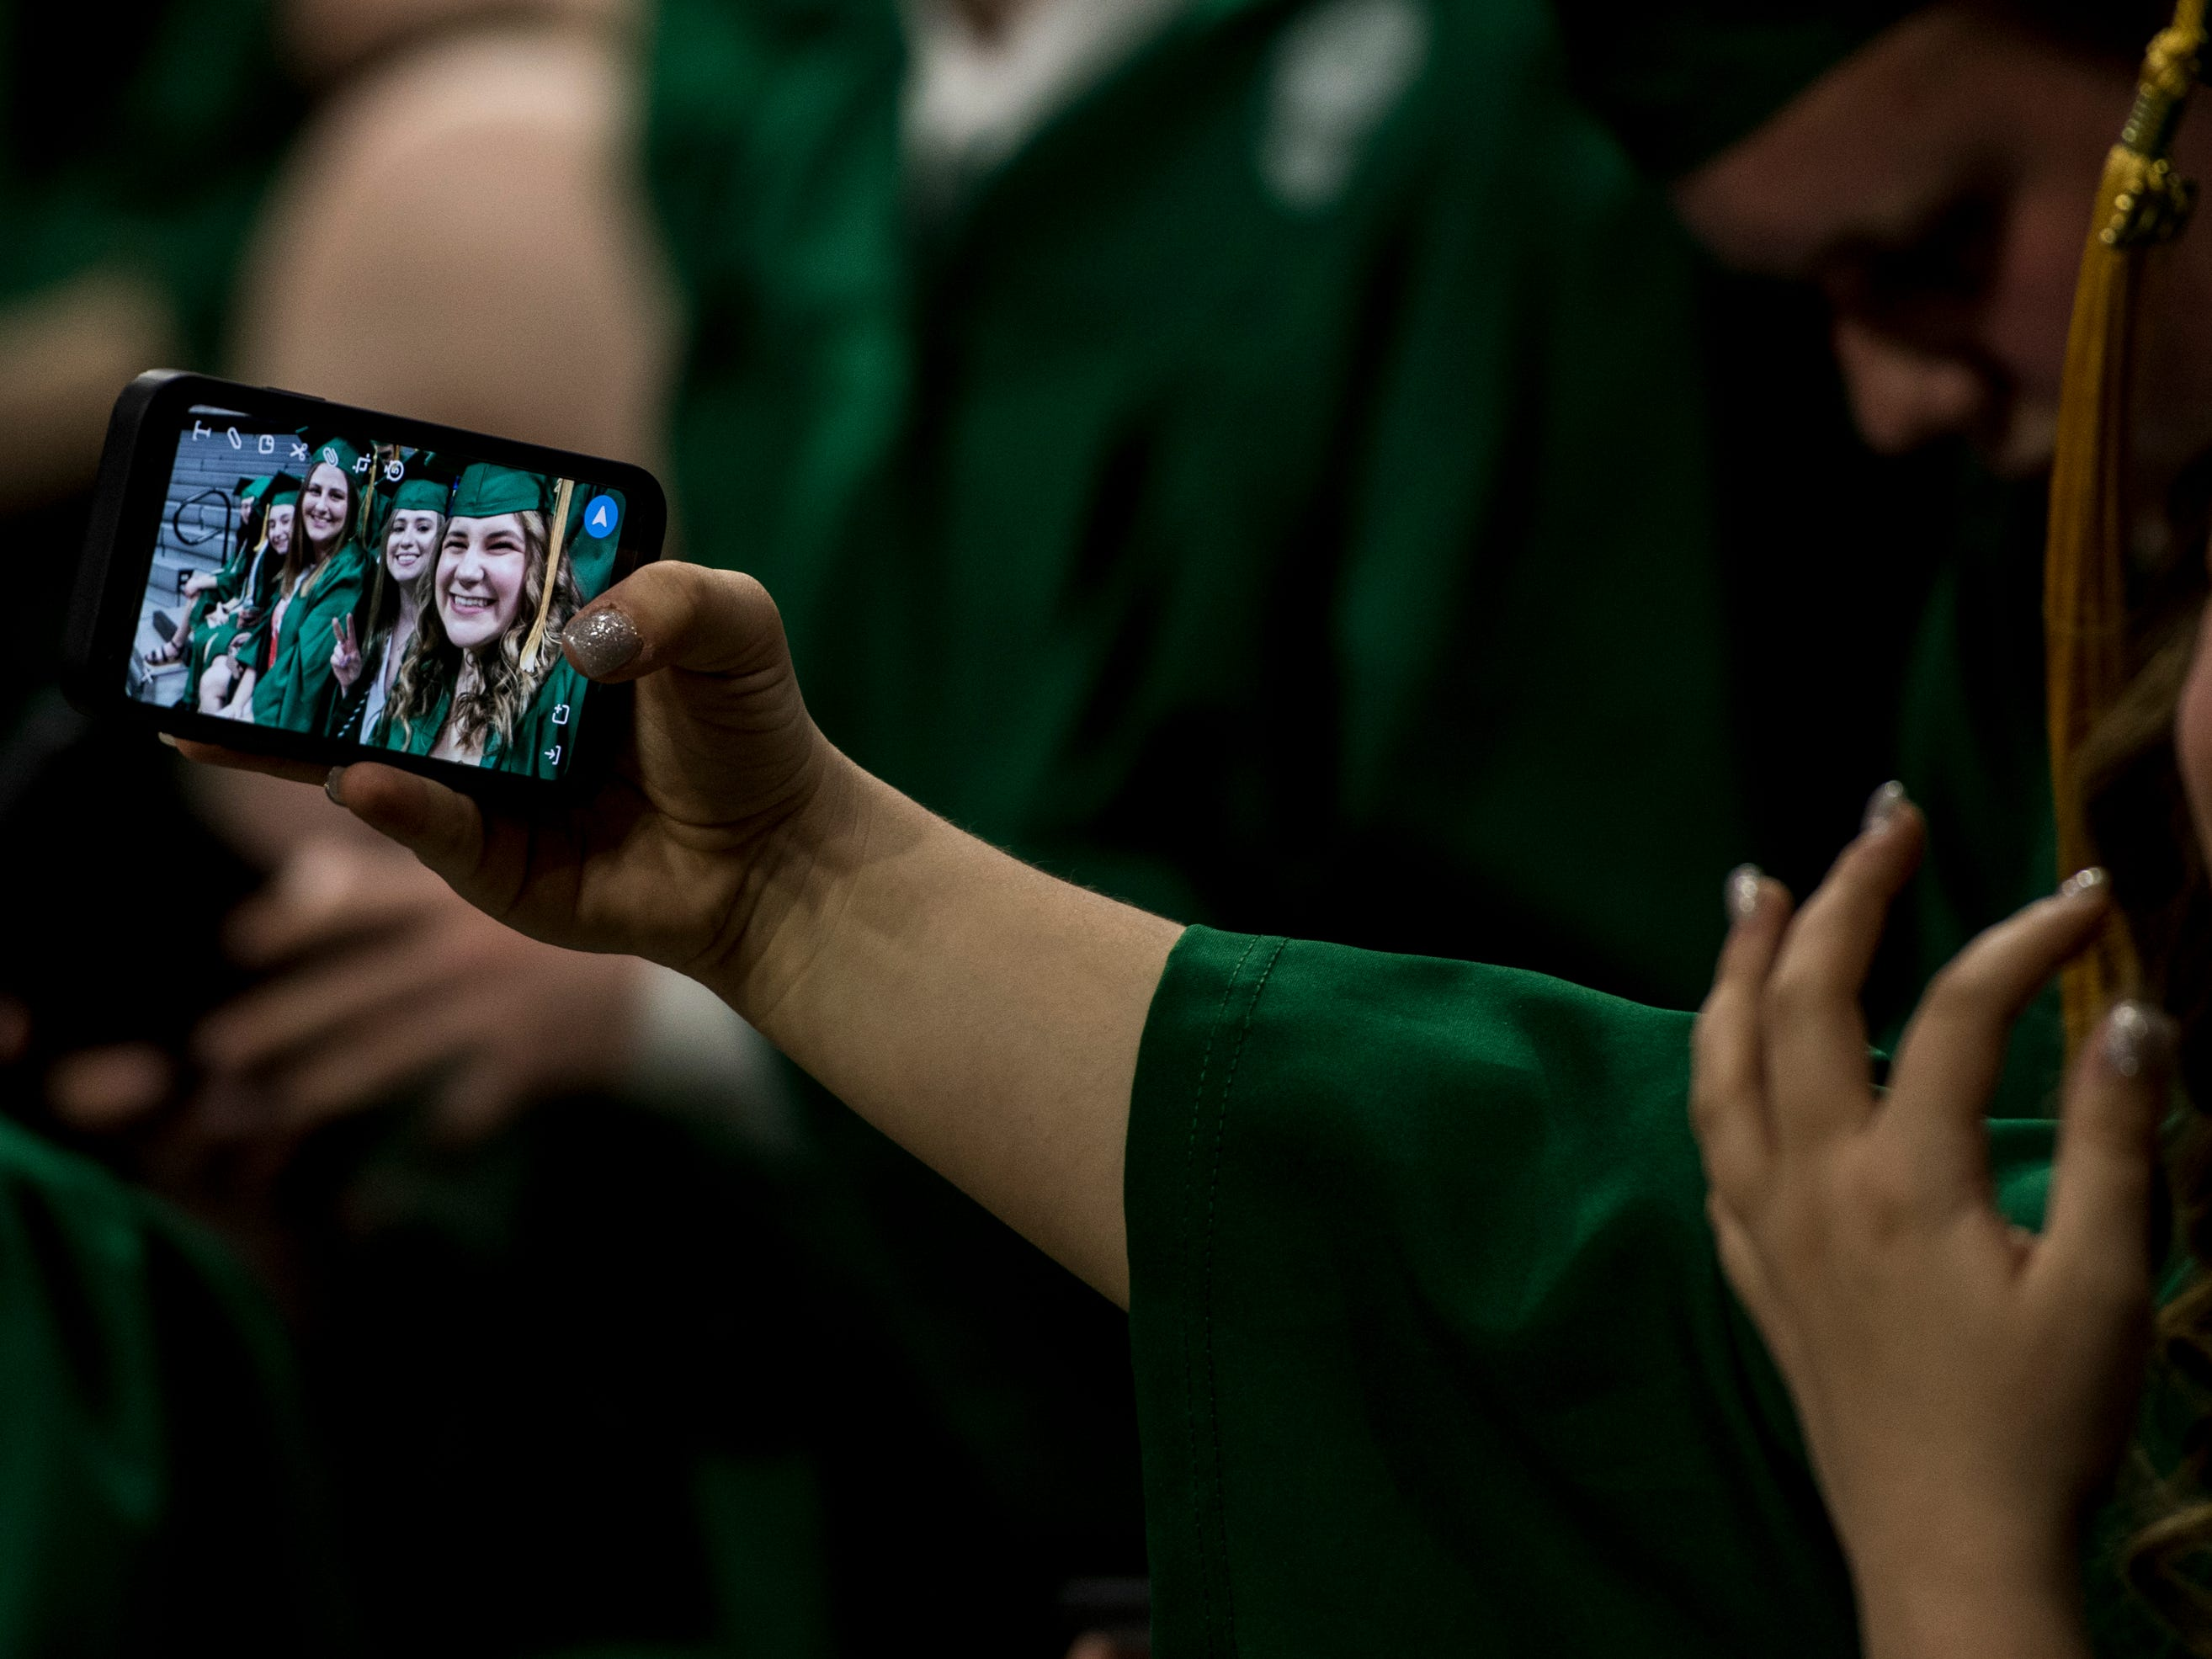 Michigan State University graduate Grace Medlin of Shelby Township laughs after taking a selfie during commencement, Friday, May 3, 2019, at the Breslin Center in East Lansing.